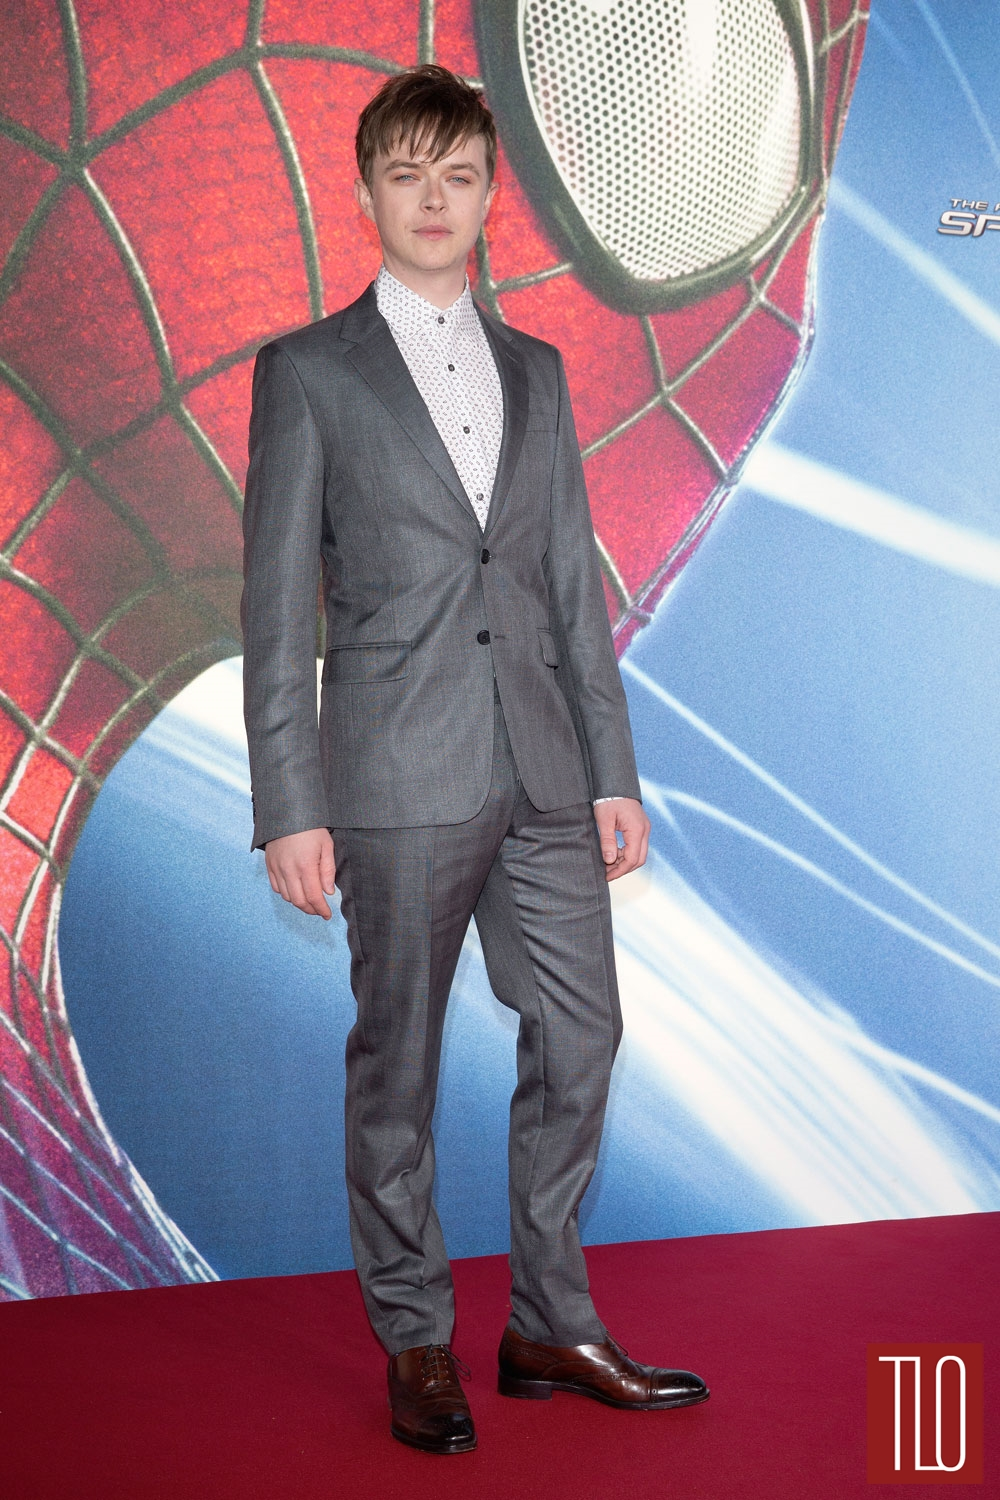 Dane-DeHaan-Spiderman-Berlin-Premiere-Prada-Tom-LOrenzo-Site-TLO (1)